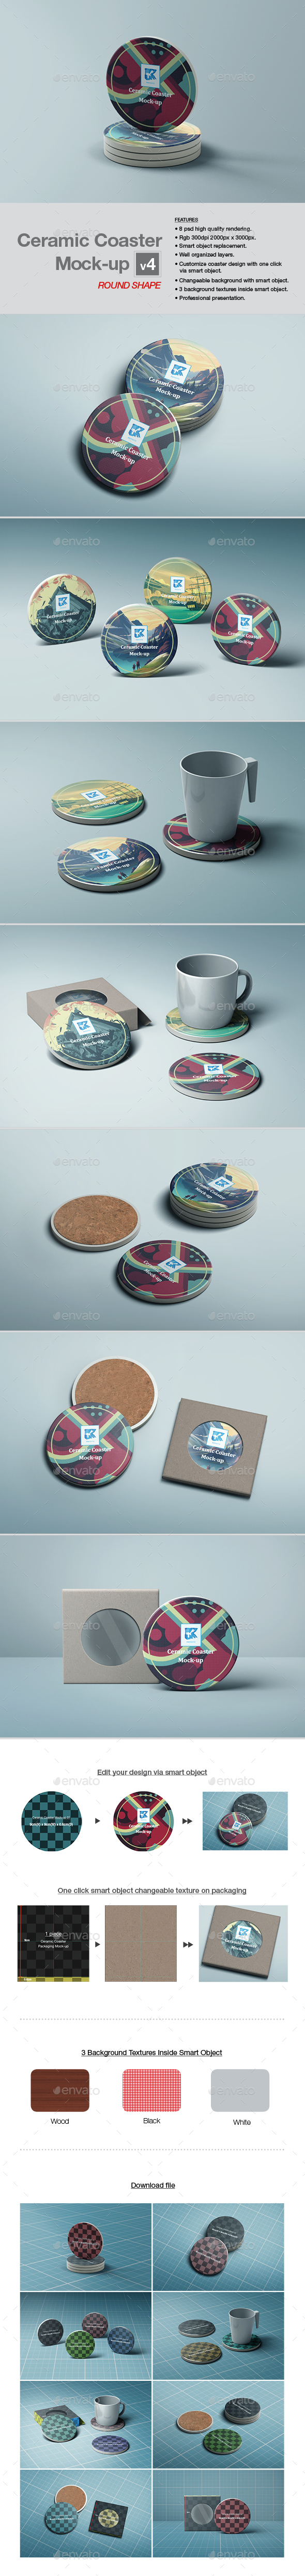 Ceramic Coaster Mock-up v4 - Print Product Mock-Ups